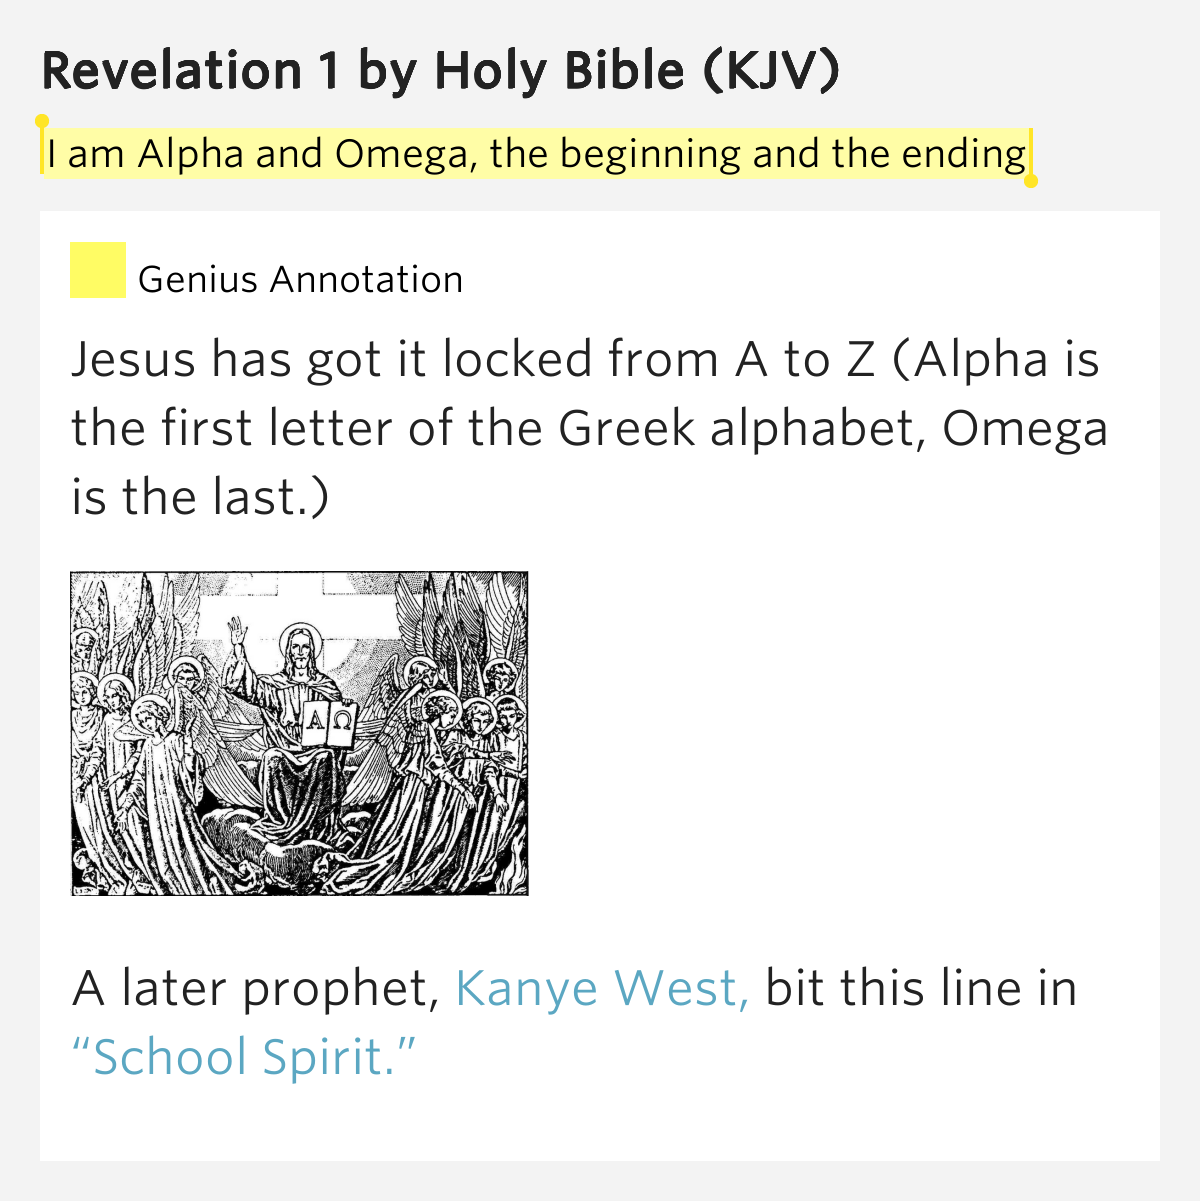 I Am Alpha And Omega, The Beginning And The Ending